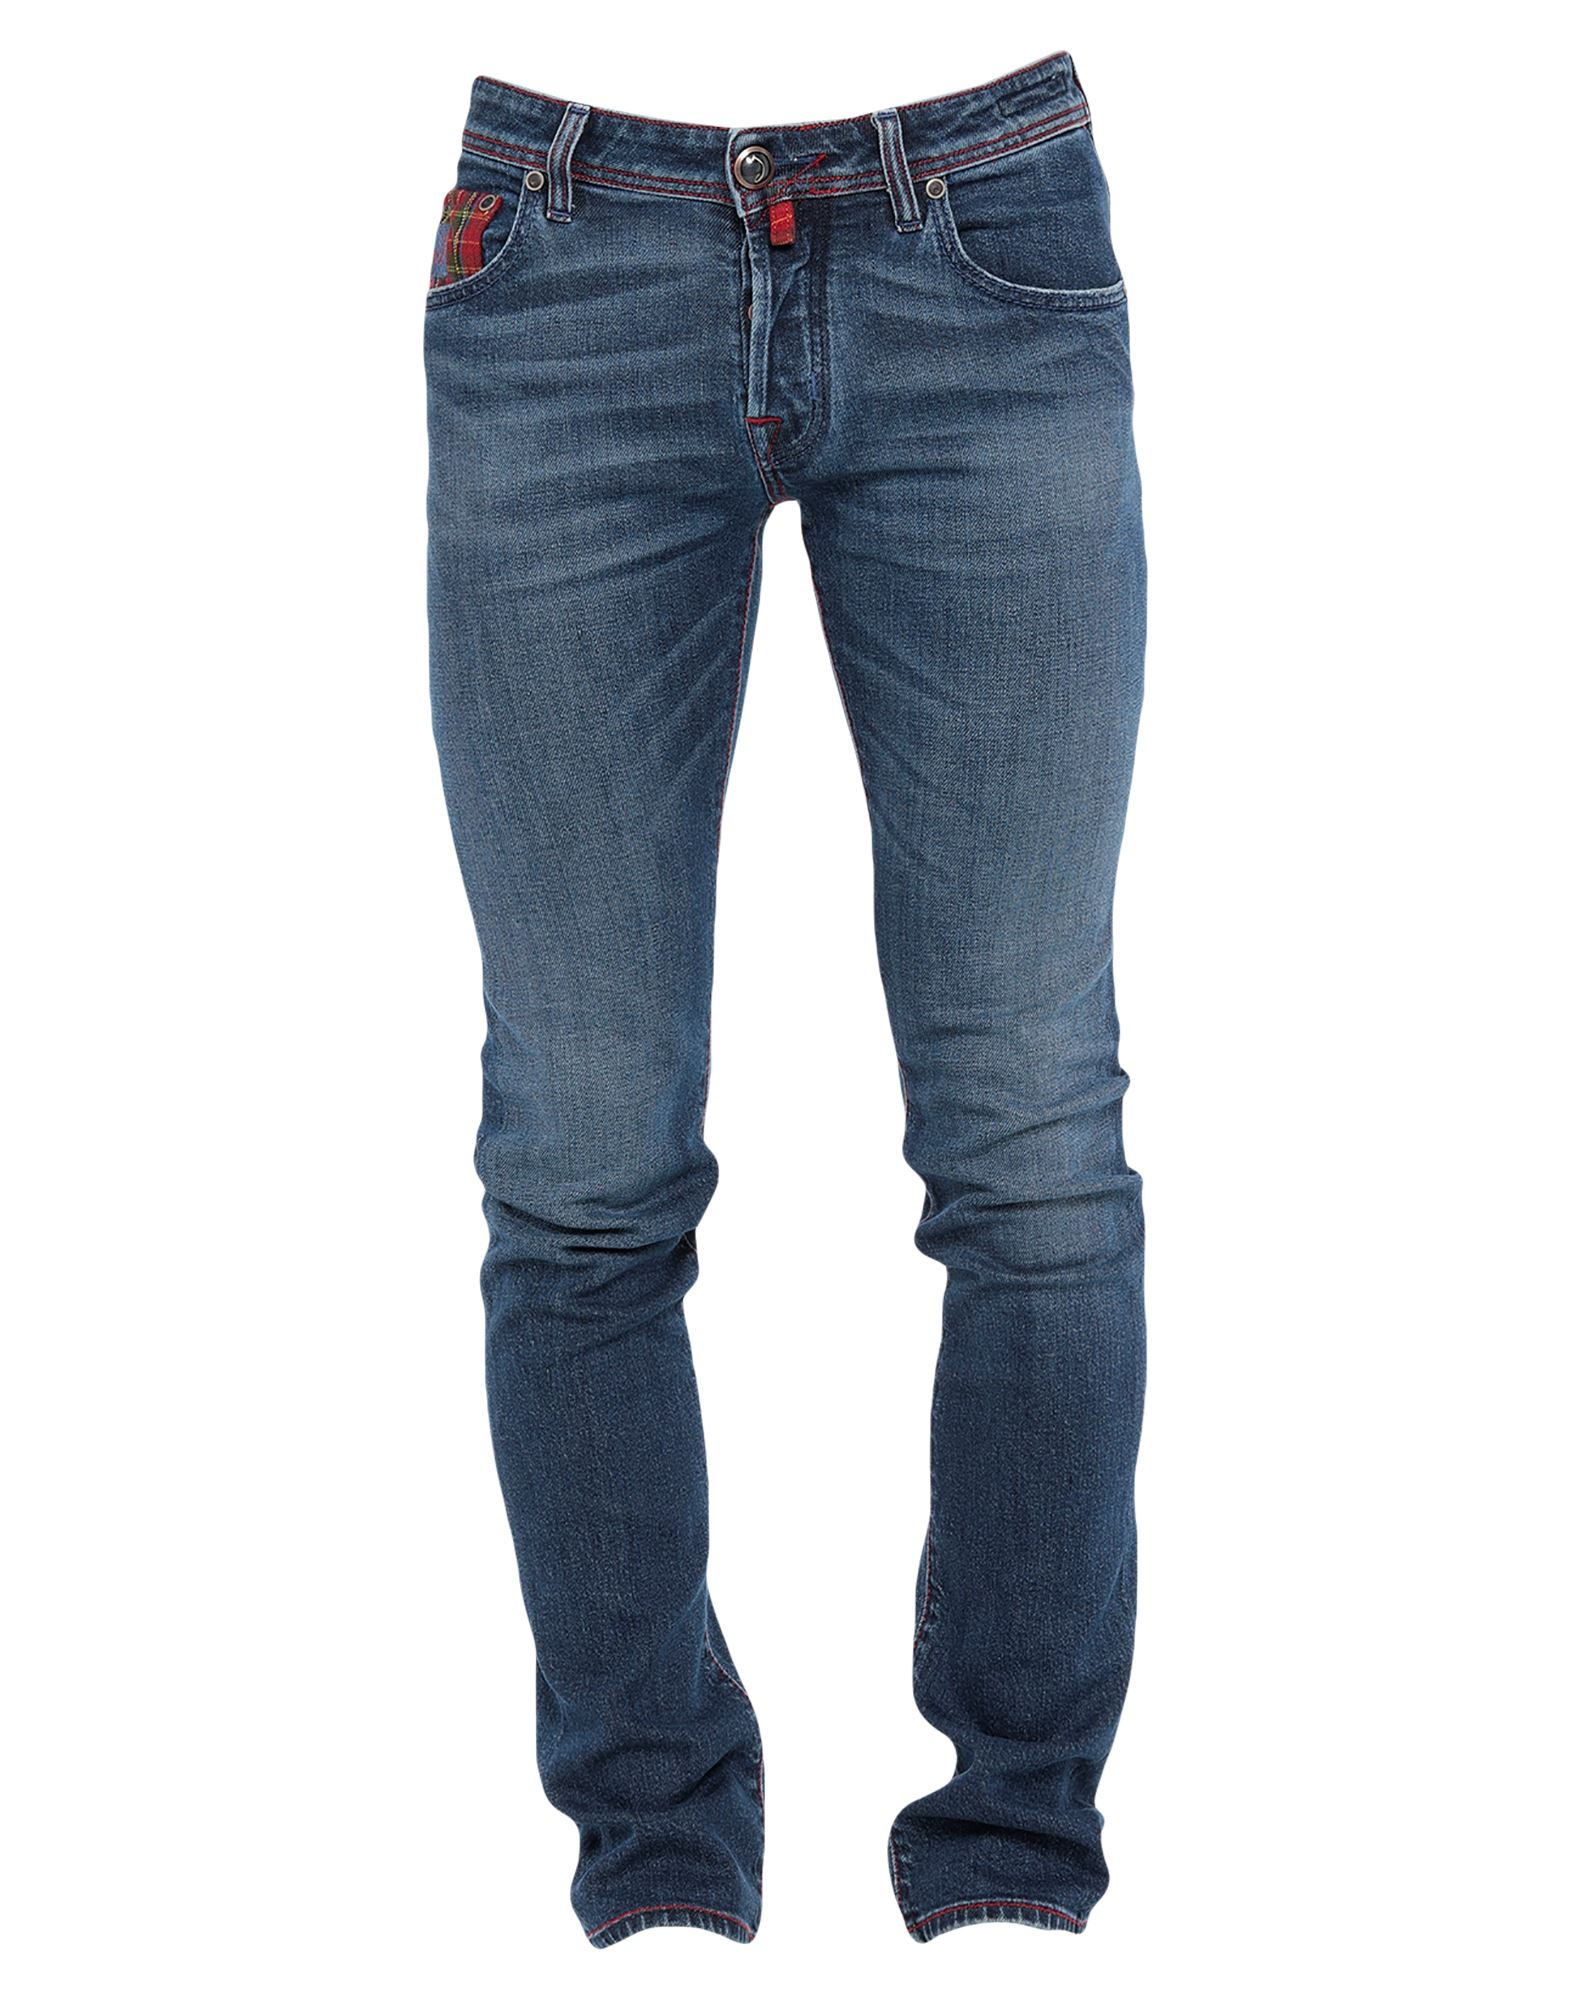 JACOB COHЁN Denim pants - Item 42826447